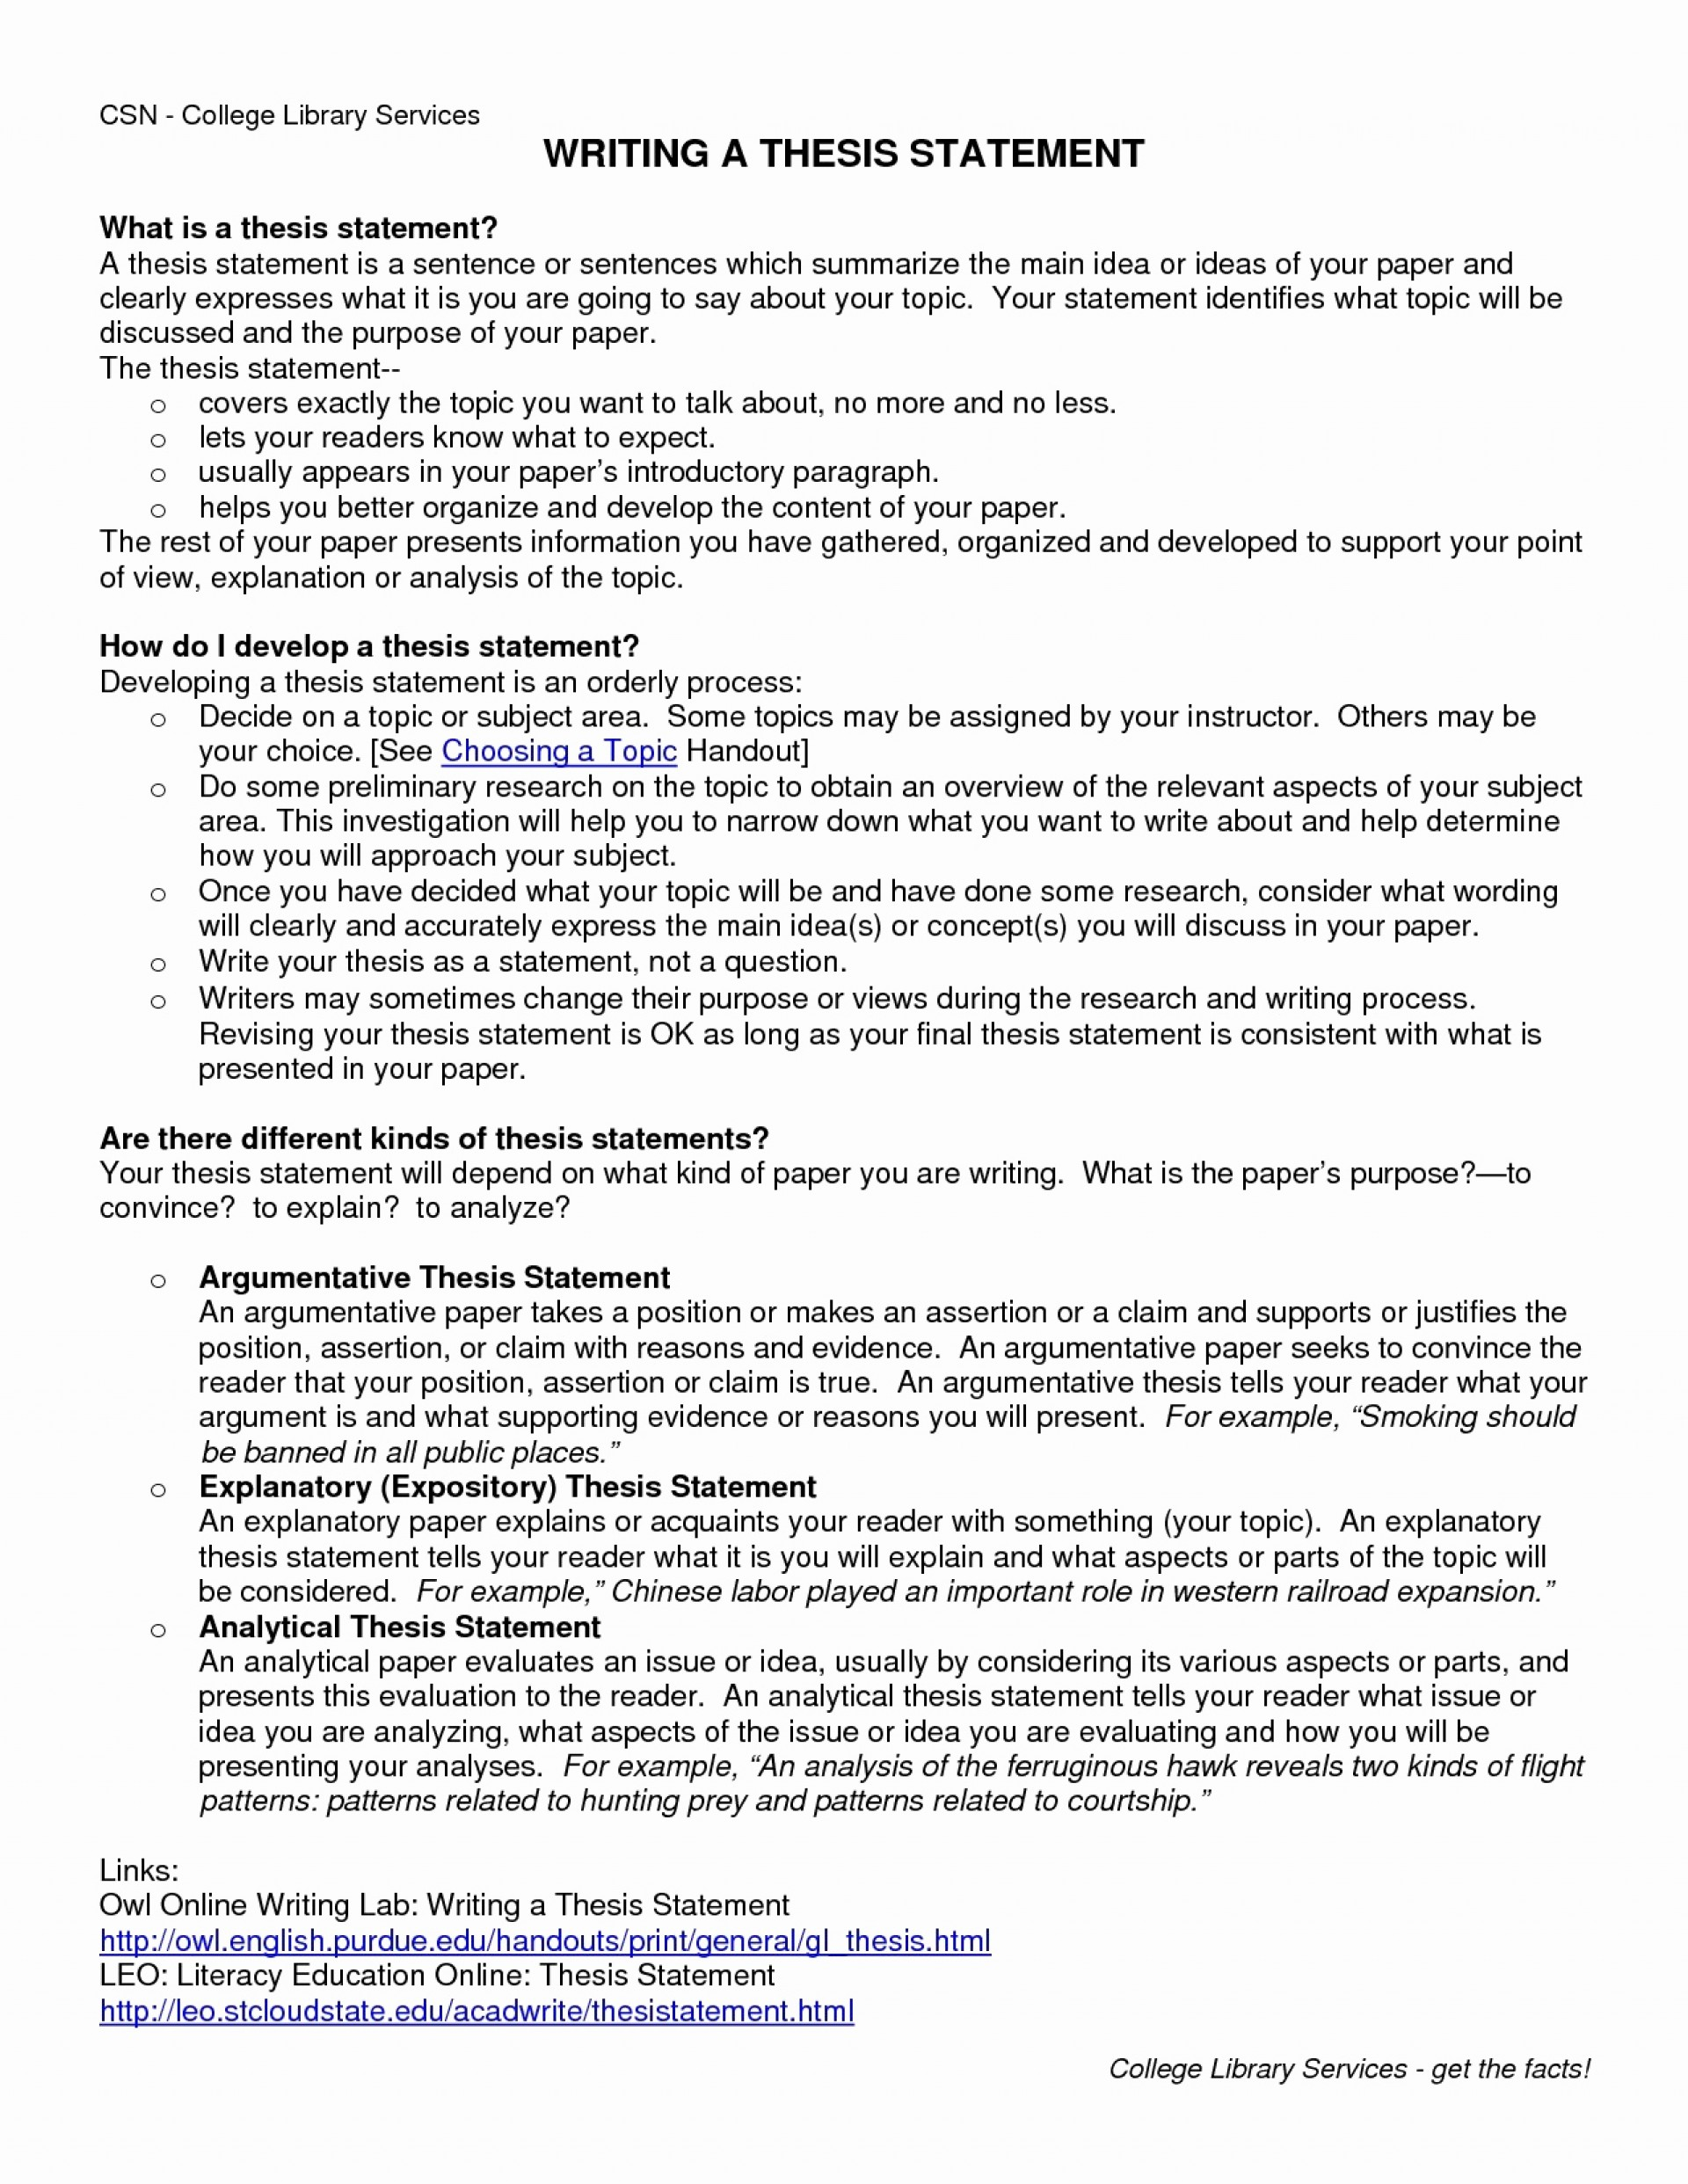 Research thesis wikipedia